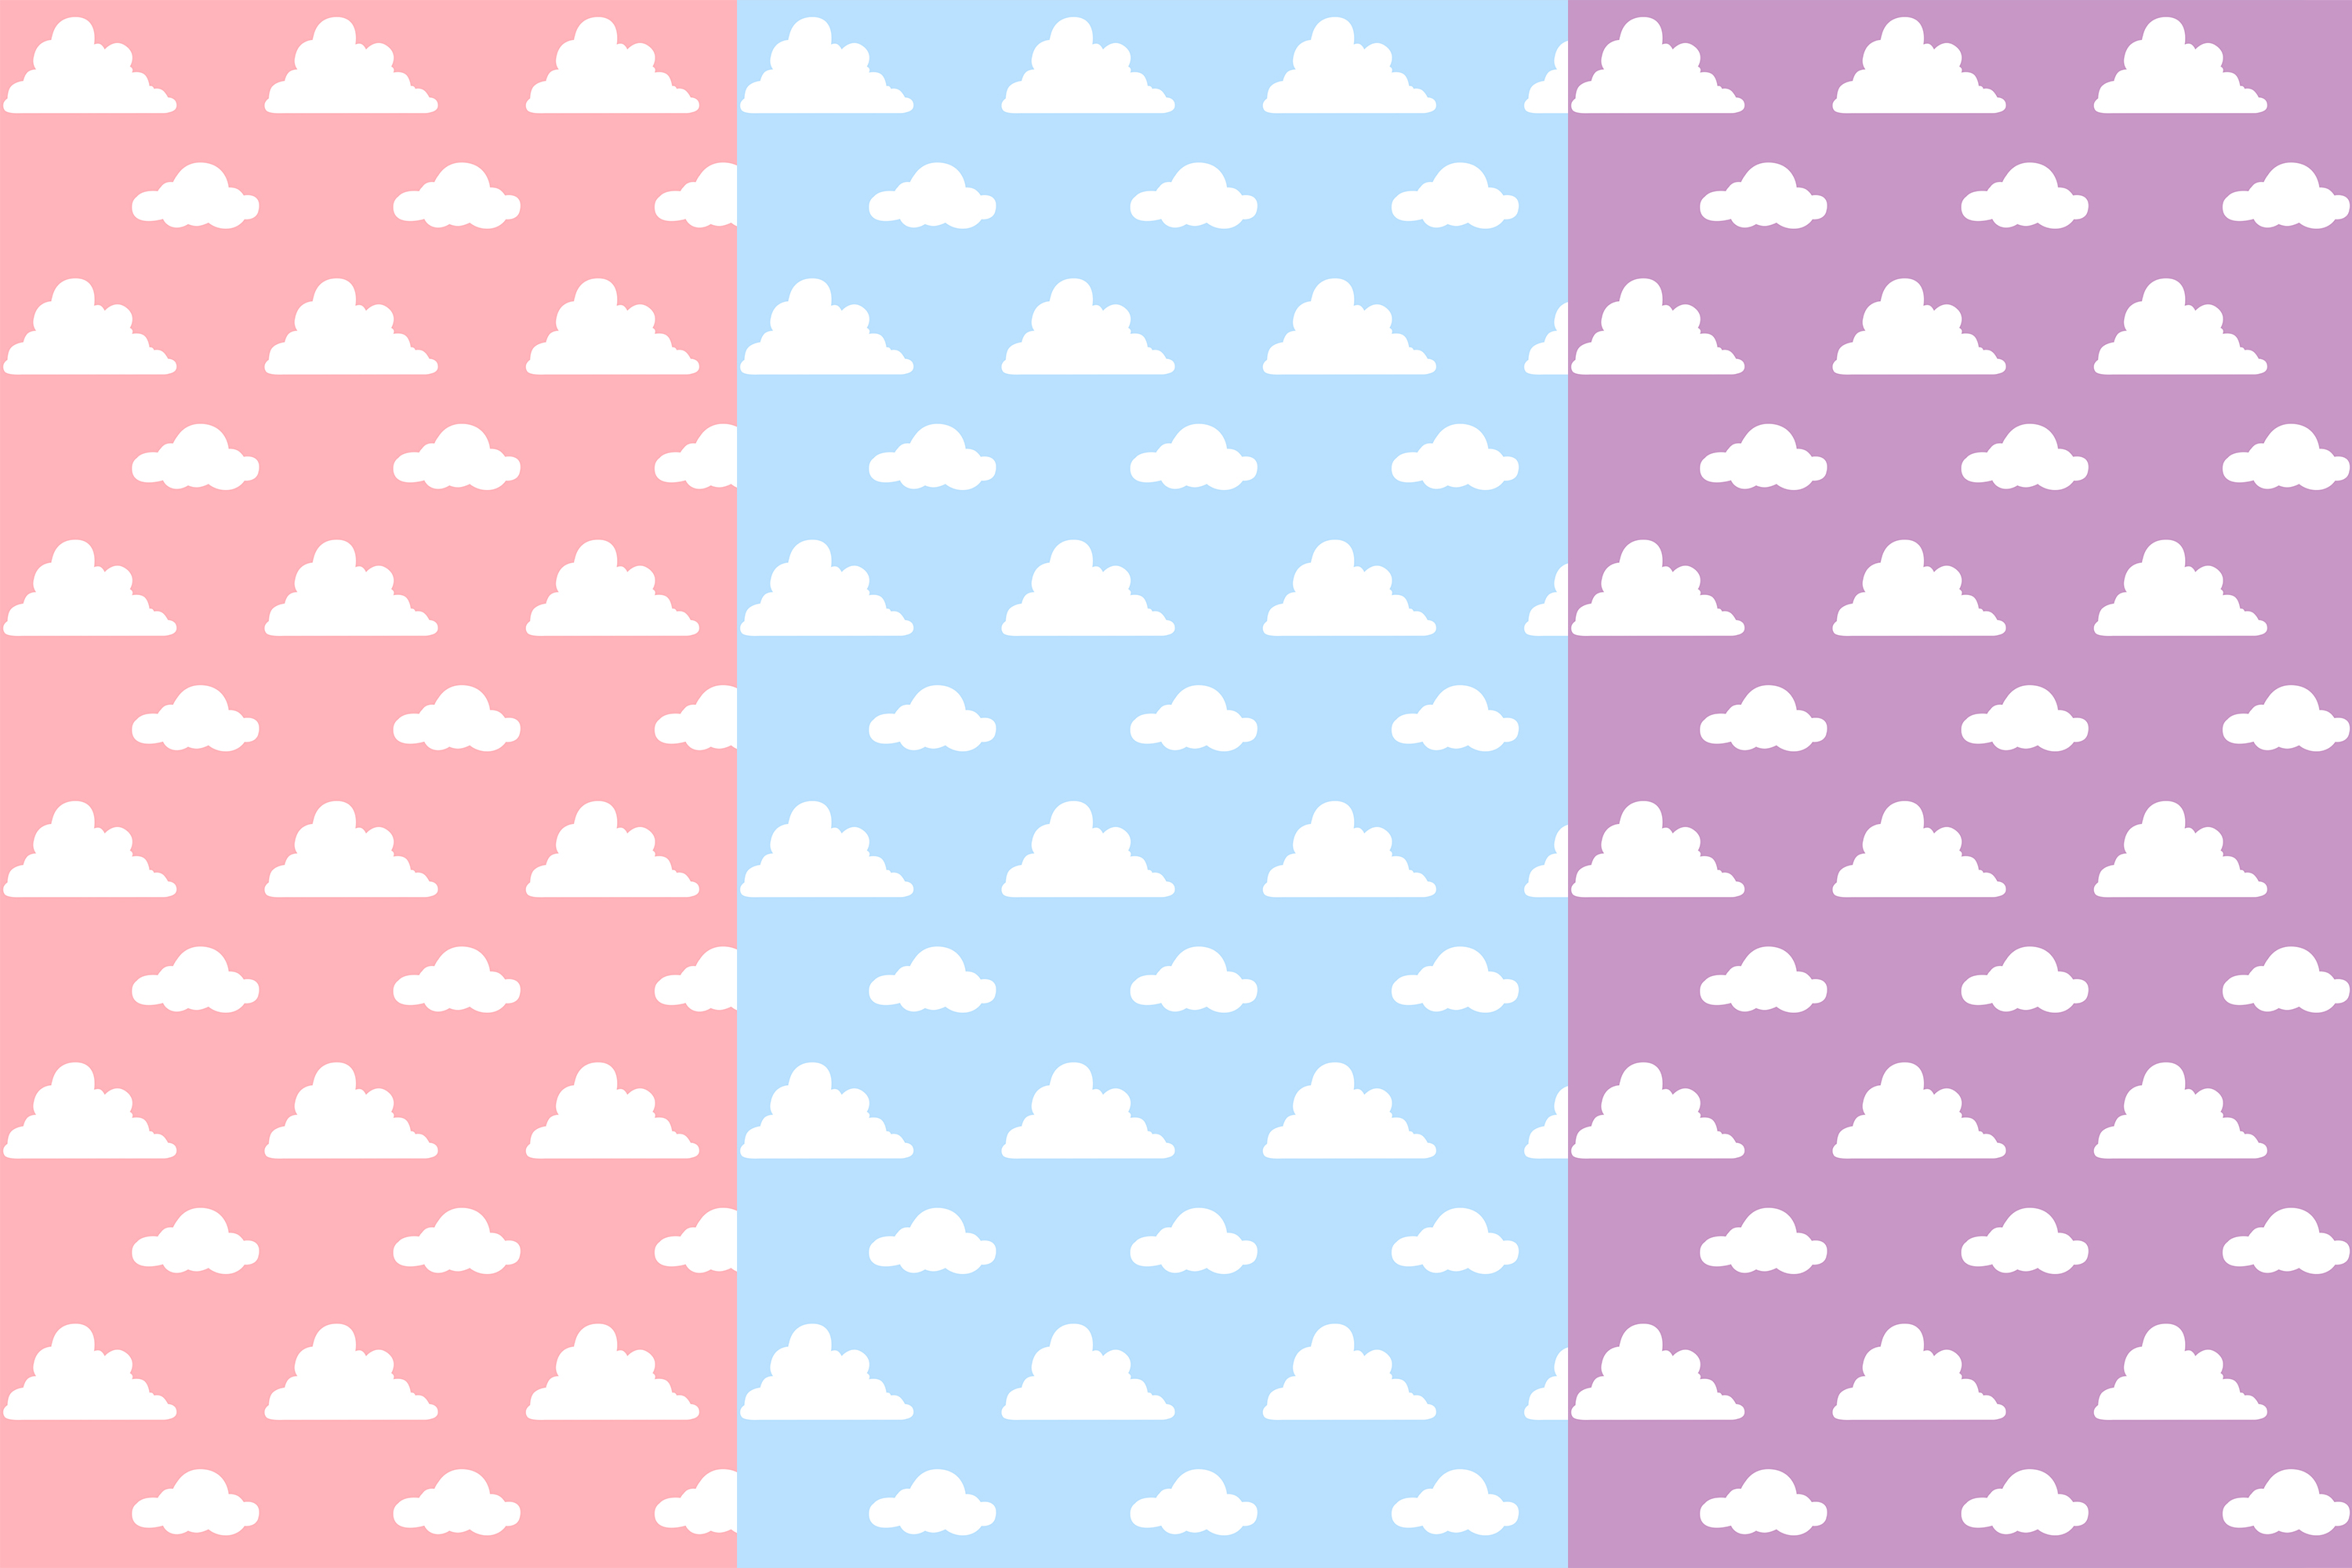 Pastel Clouds Seamless Patterns, Clouds Patterns example image 2